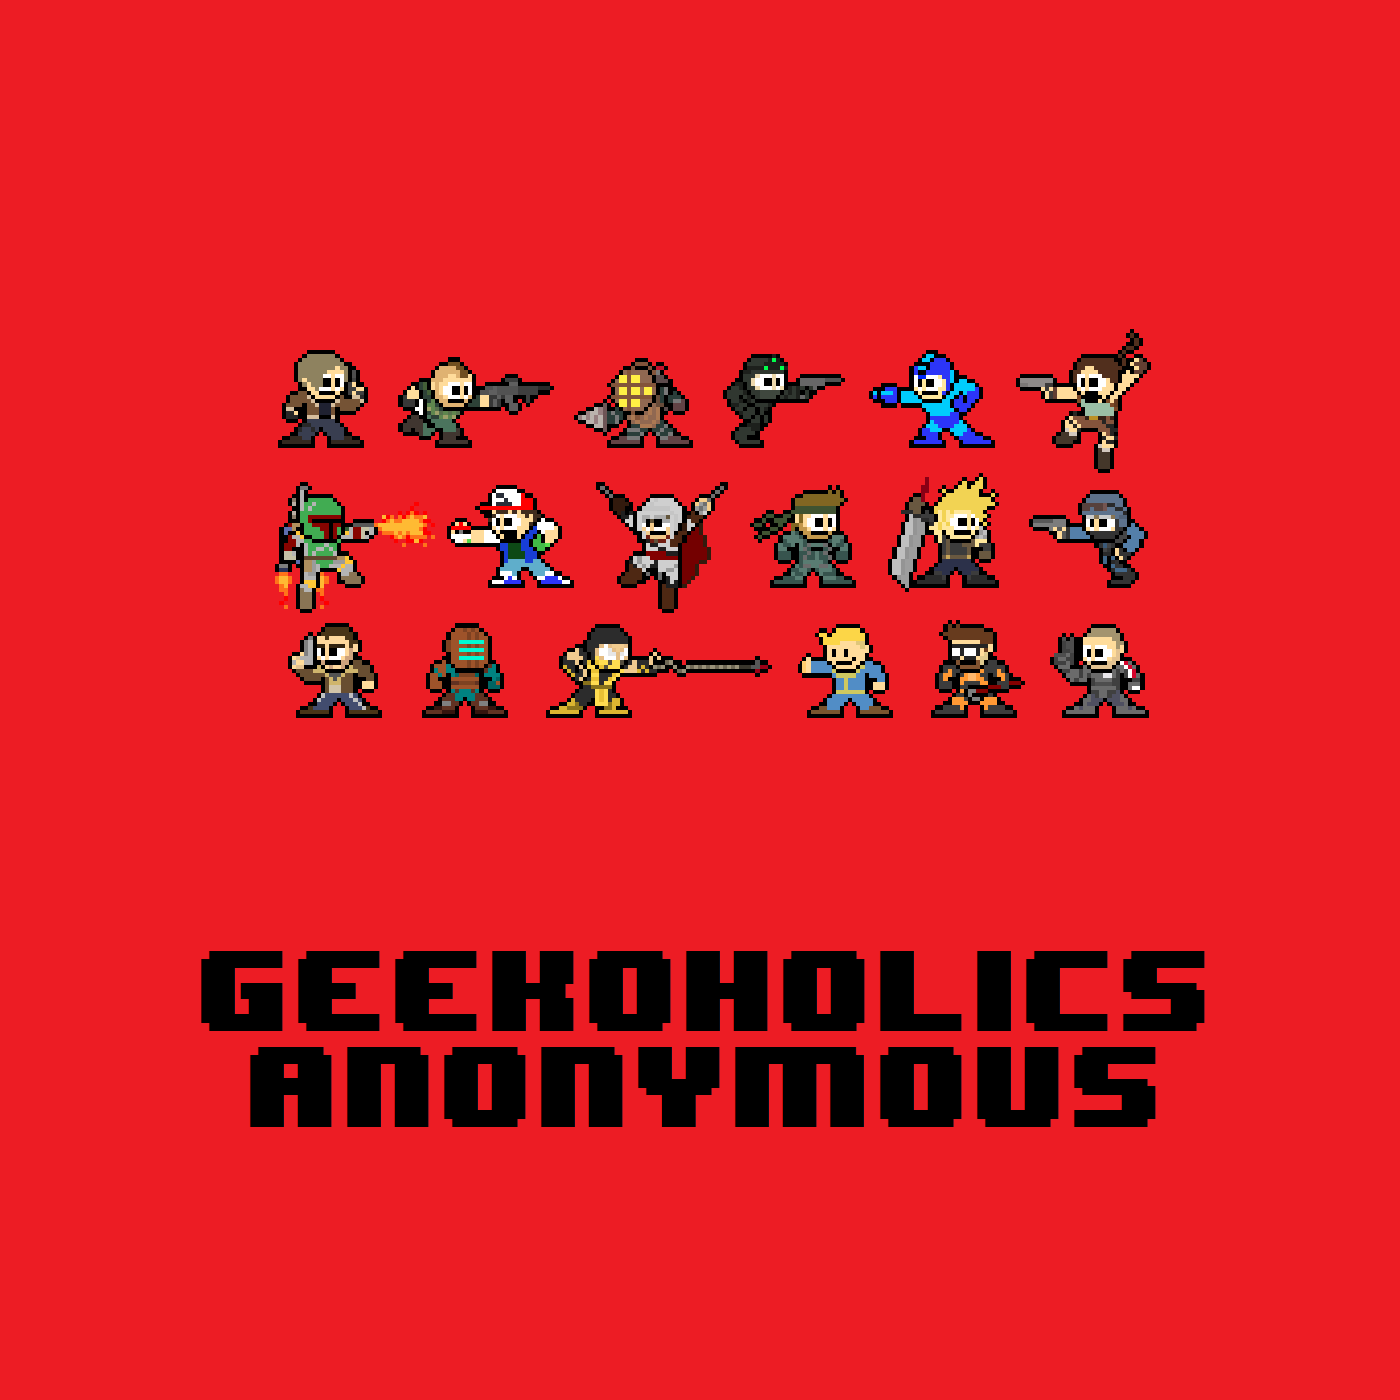 Valhiem, Super Mario 3D World + Bowser's Fury, Nintendo Direct and more - Geekoholics Anonymous Podcast 293 show art